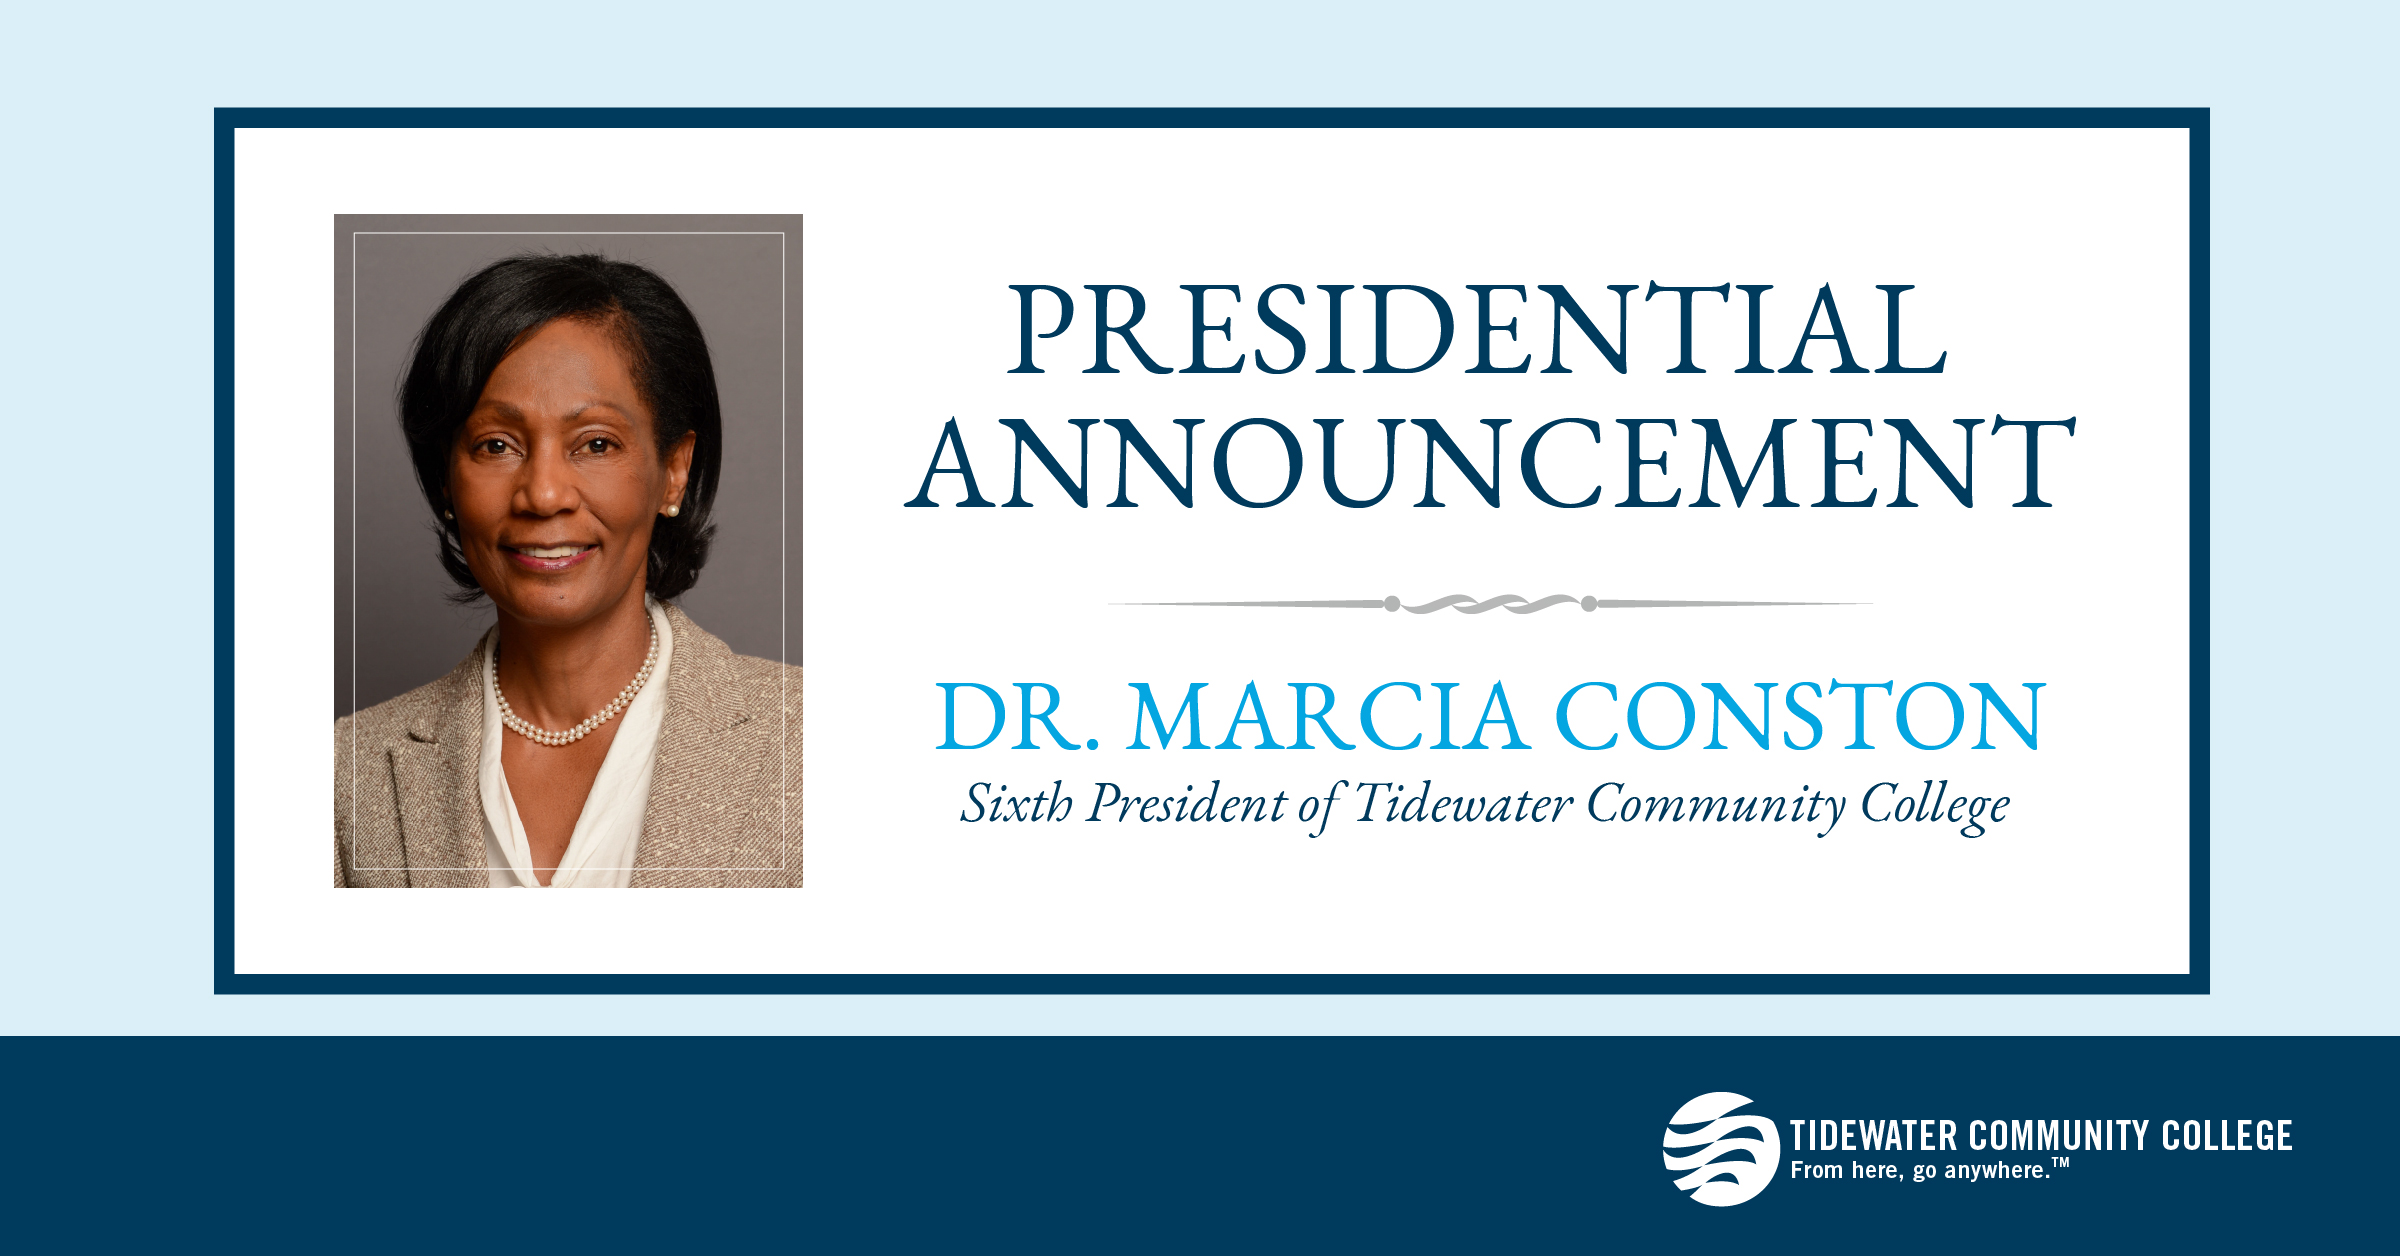 Presidential Announcement: Dr. Marcia Conston, Sixth President of Tidewater Community College